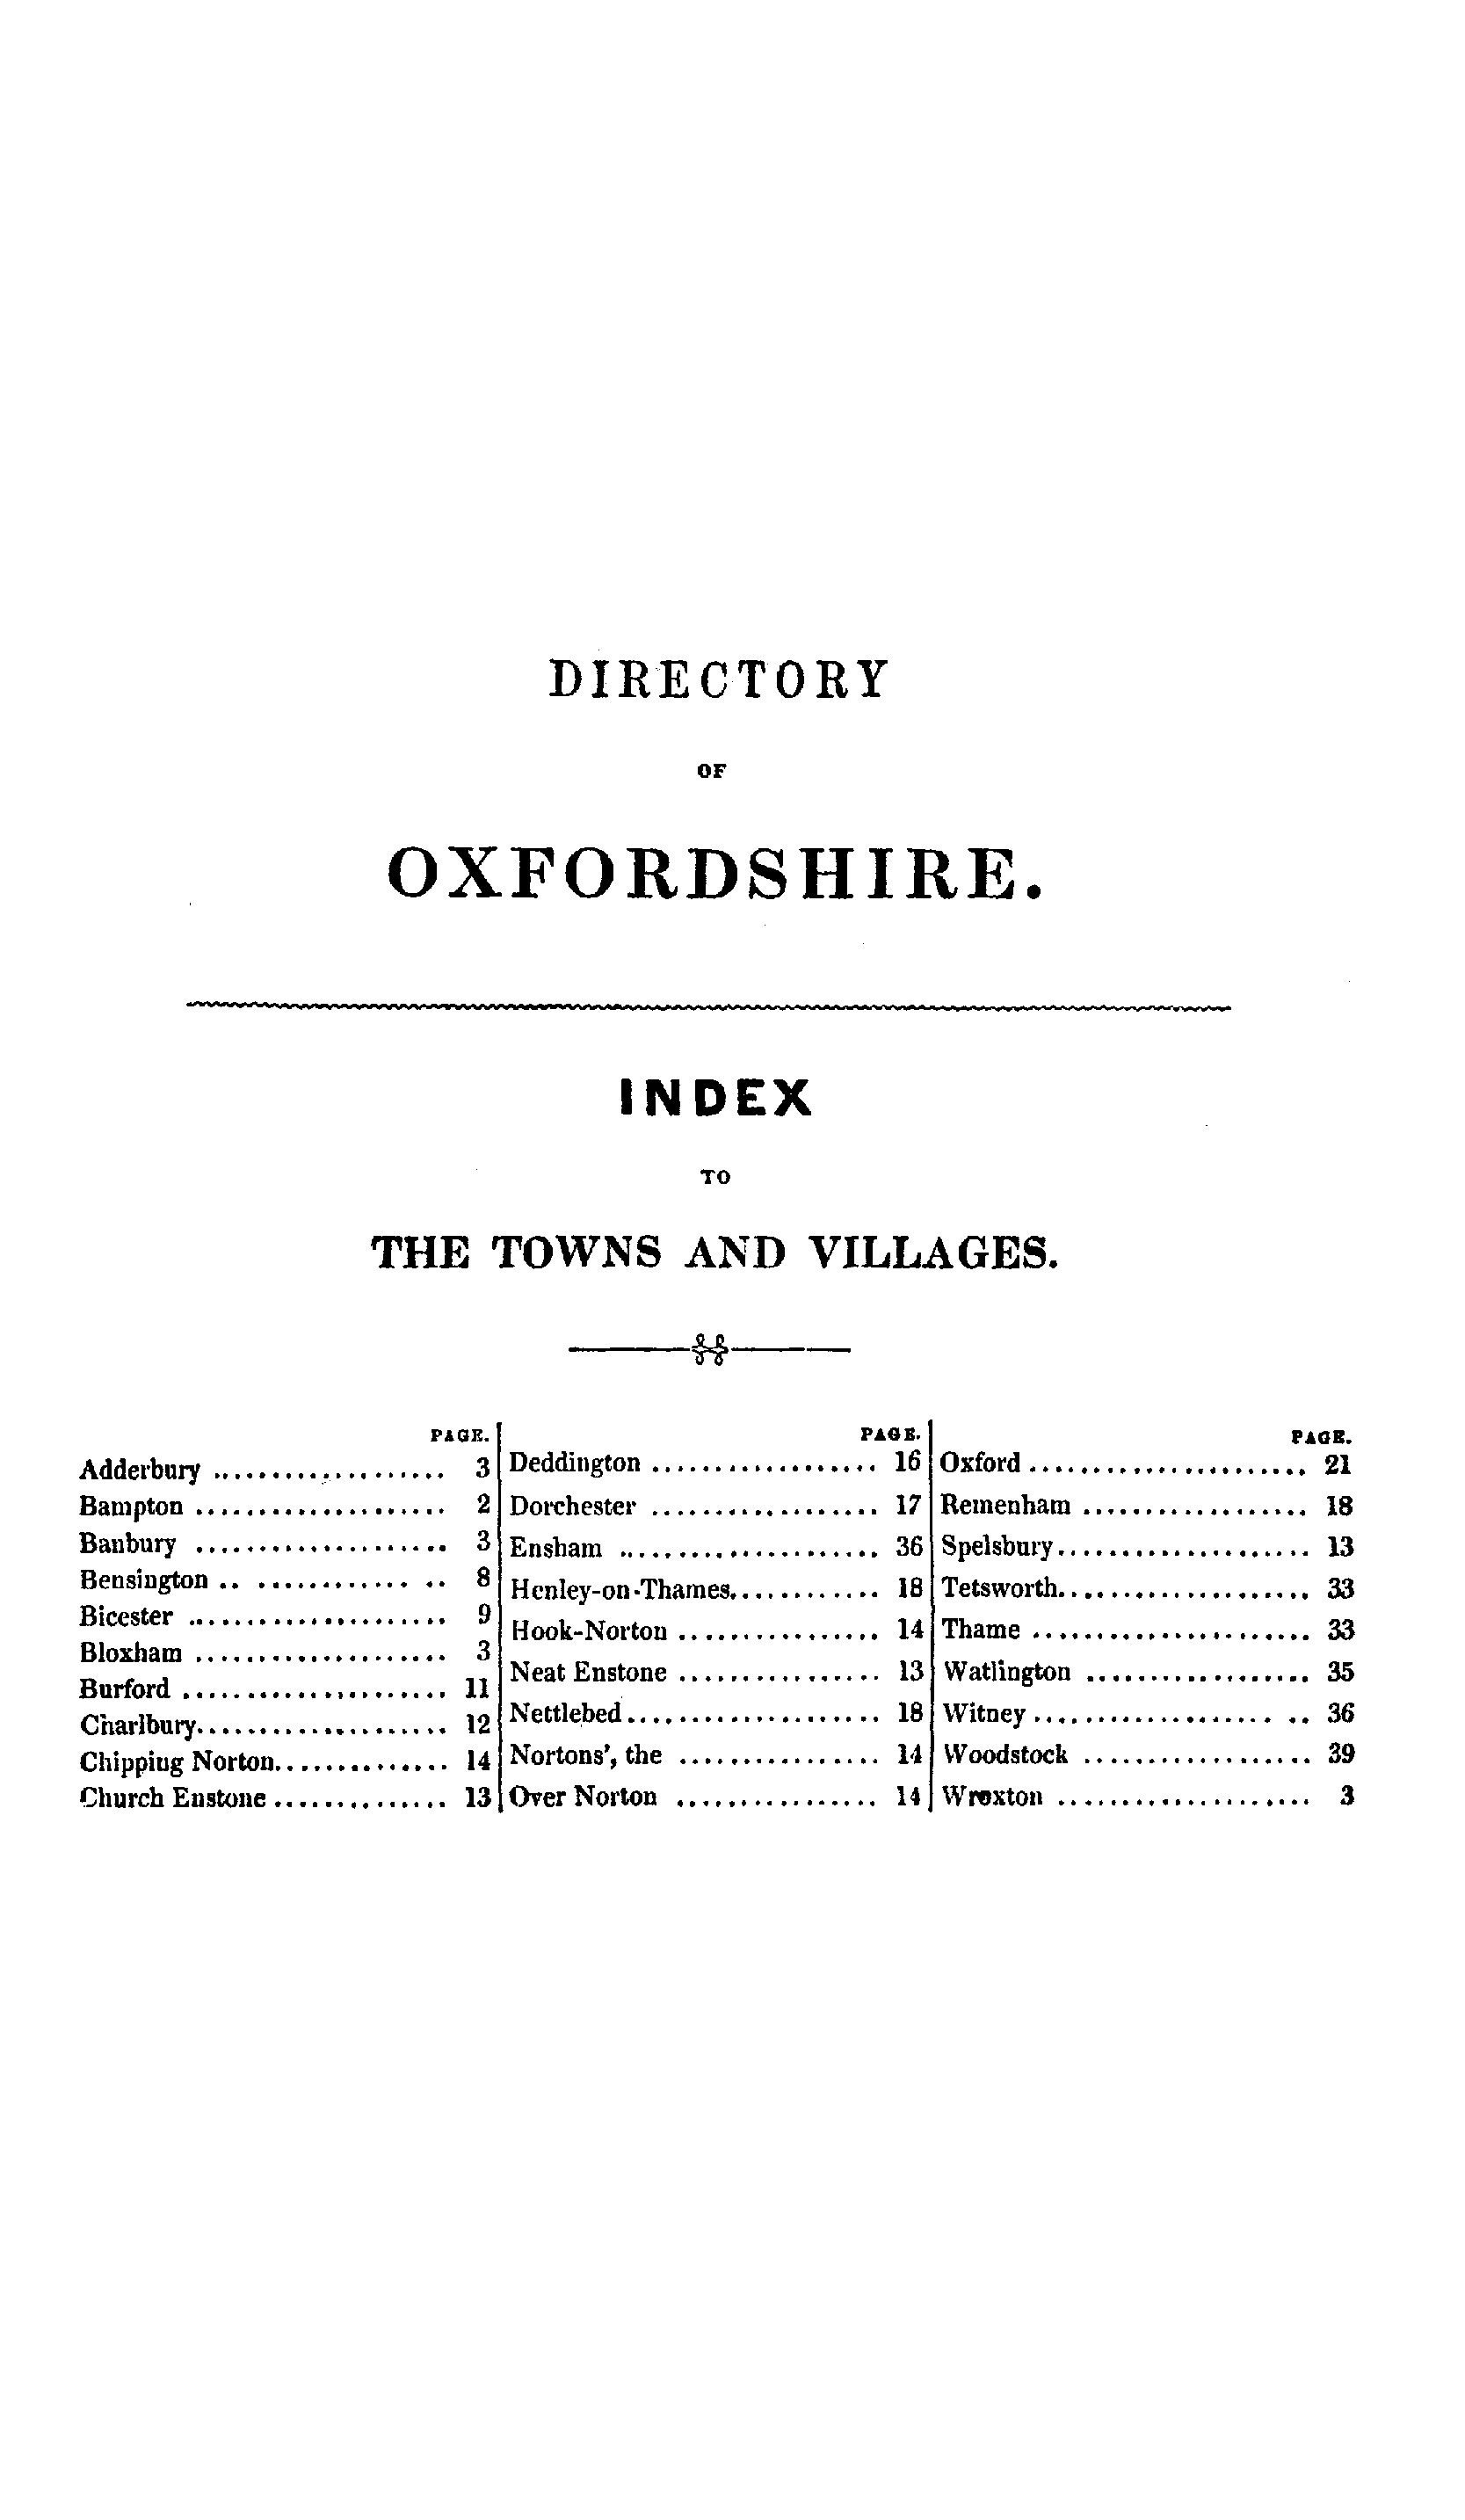 Pigot Directory of Oxfordshire, 1842 page  - click to open larger version in a new window